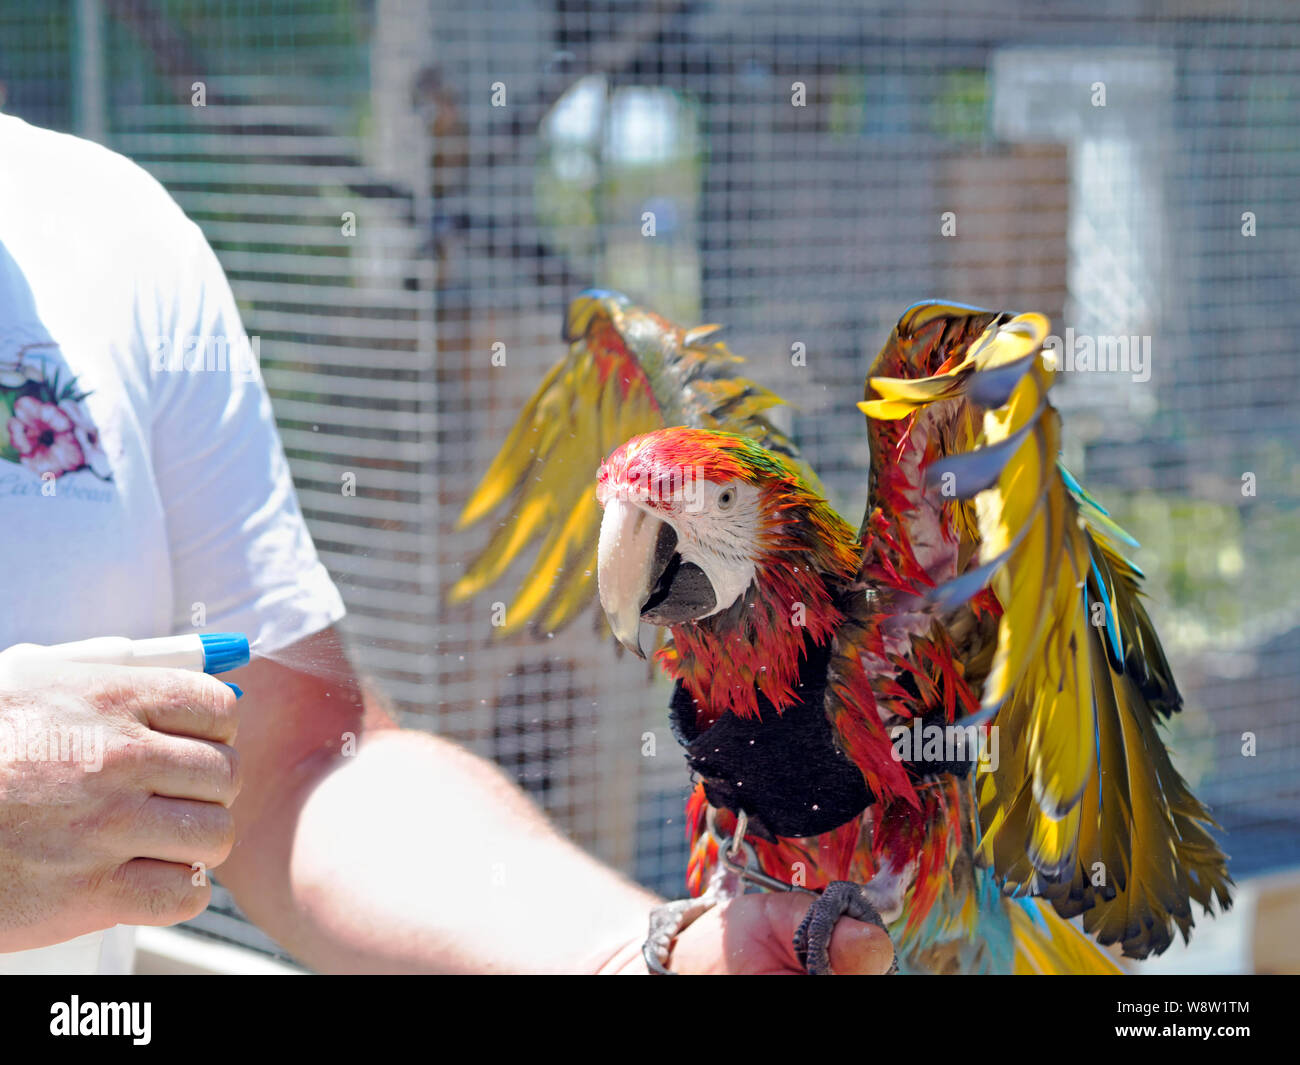 Macaw in a vest is wet down with a spray bottle on a hot August day at the South Texas Botanical Gardens & Nature Center in Corpus Christi, Texas USA. Stock Photo